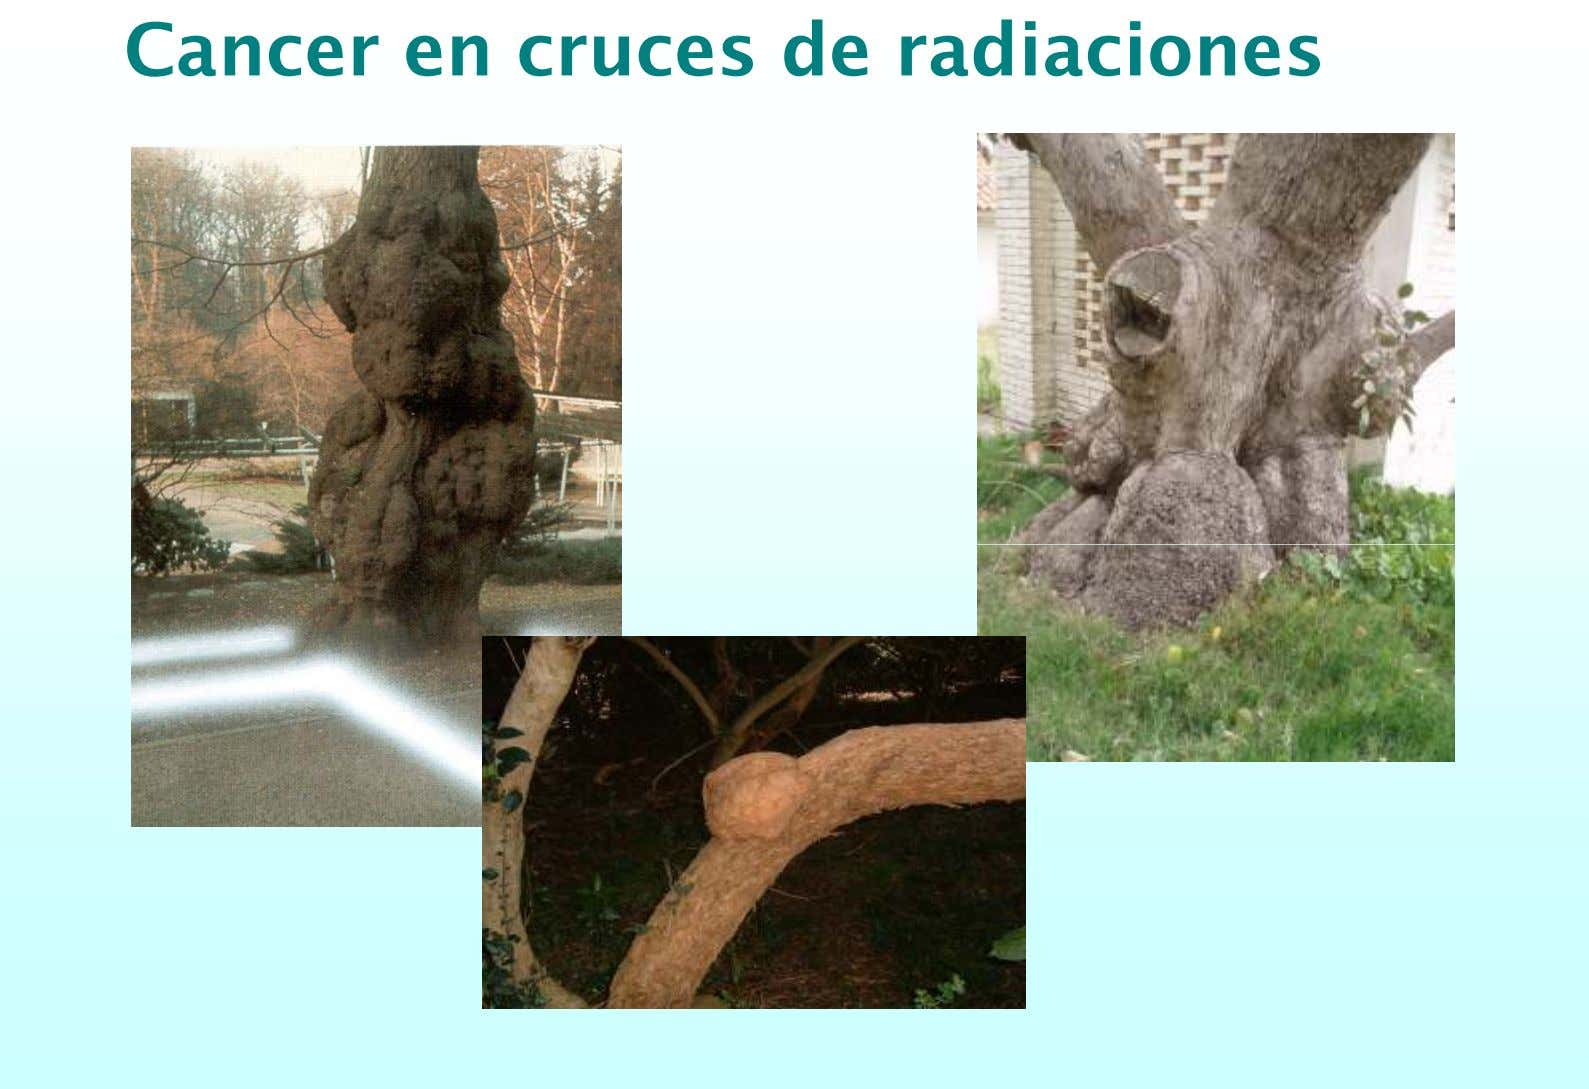 Cancer en cruces de radiaciones